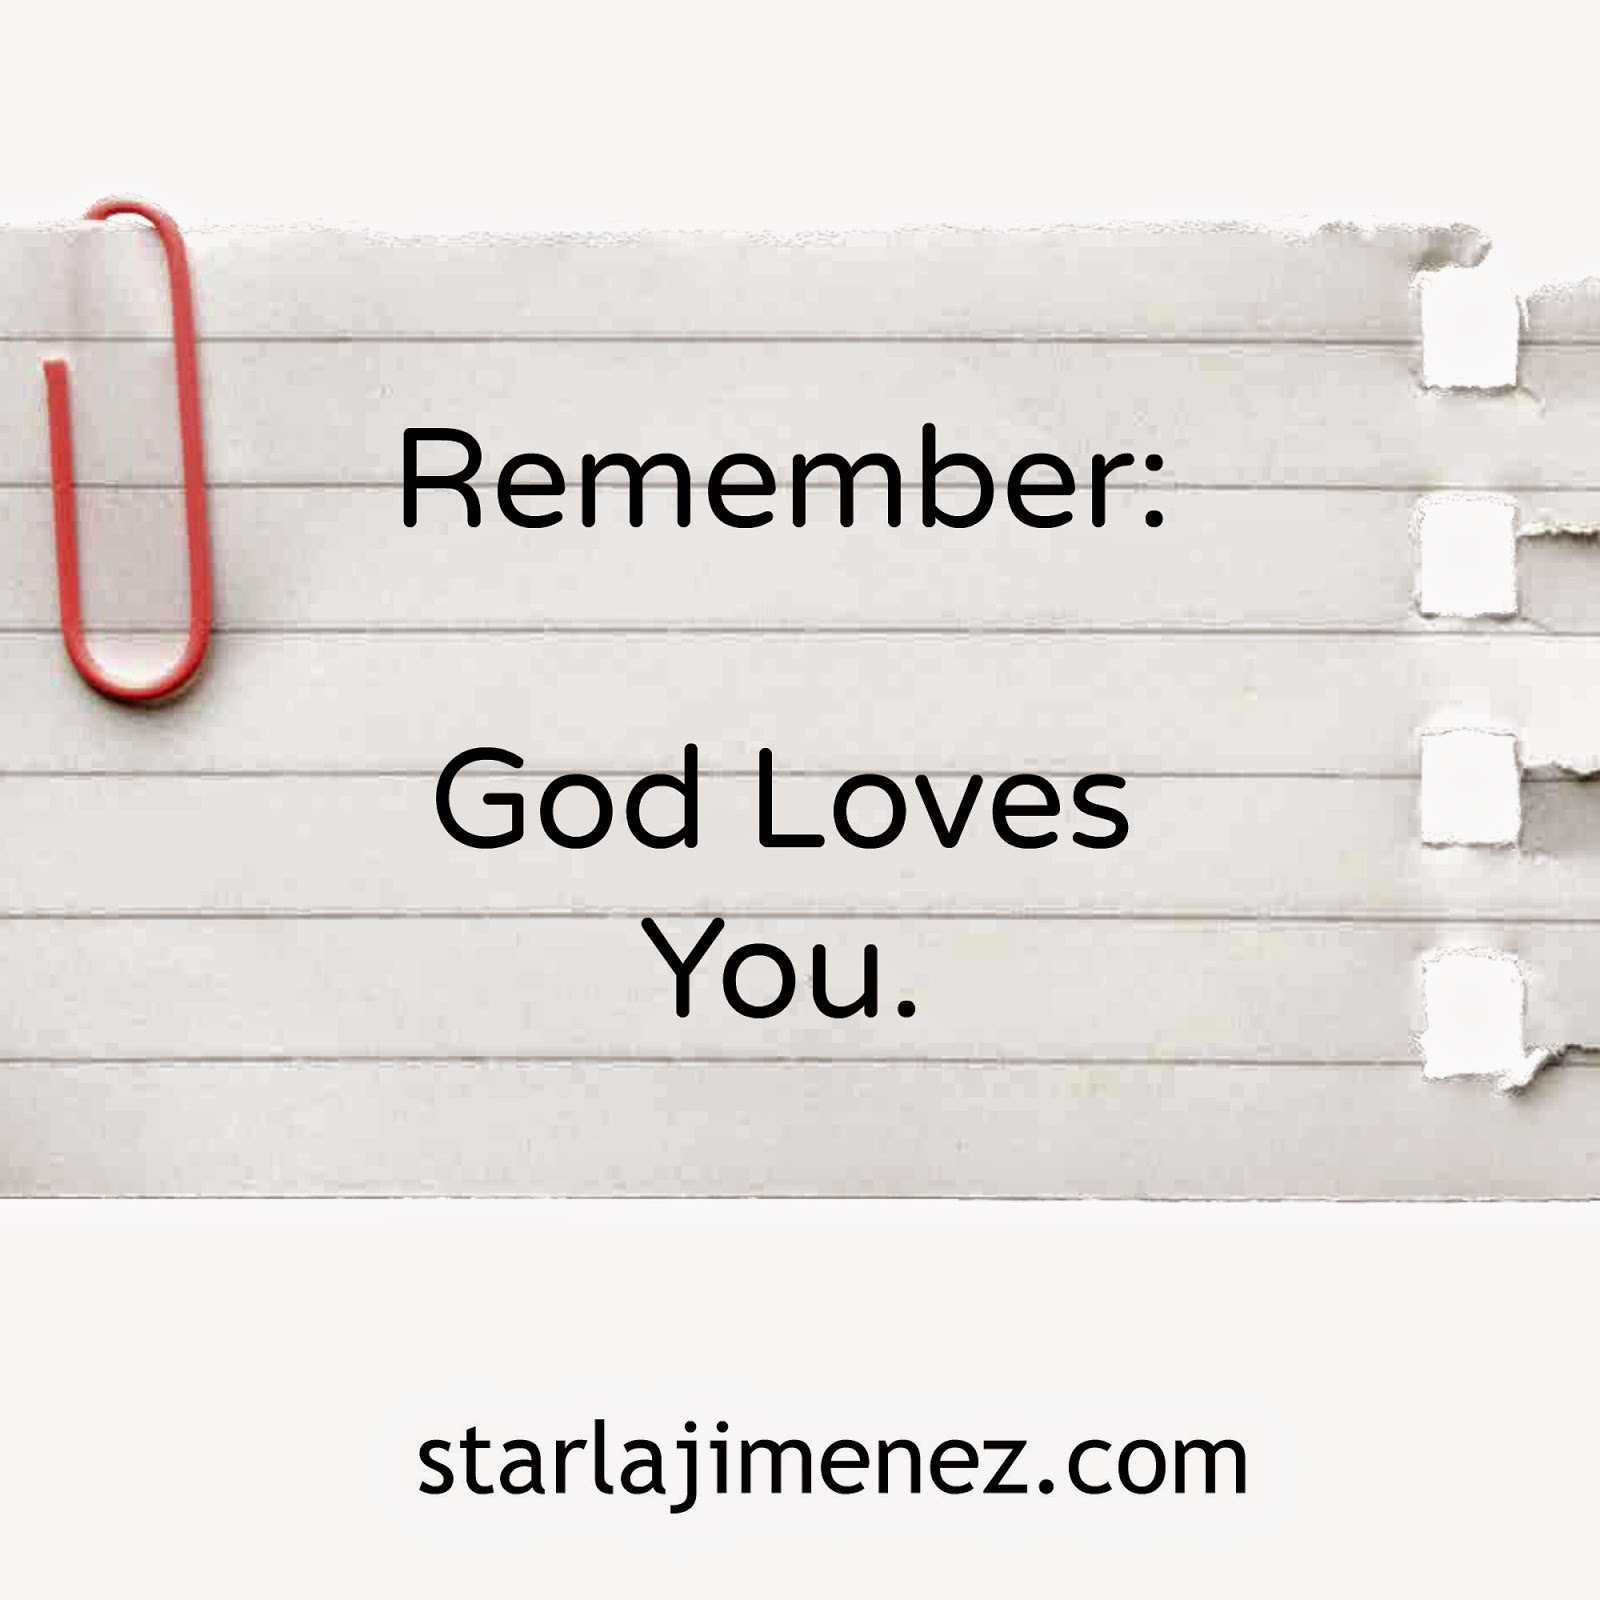 Remembering that God Loves You.